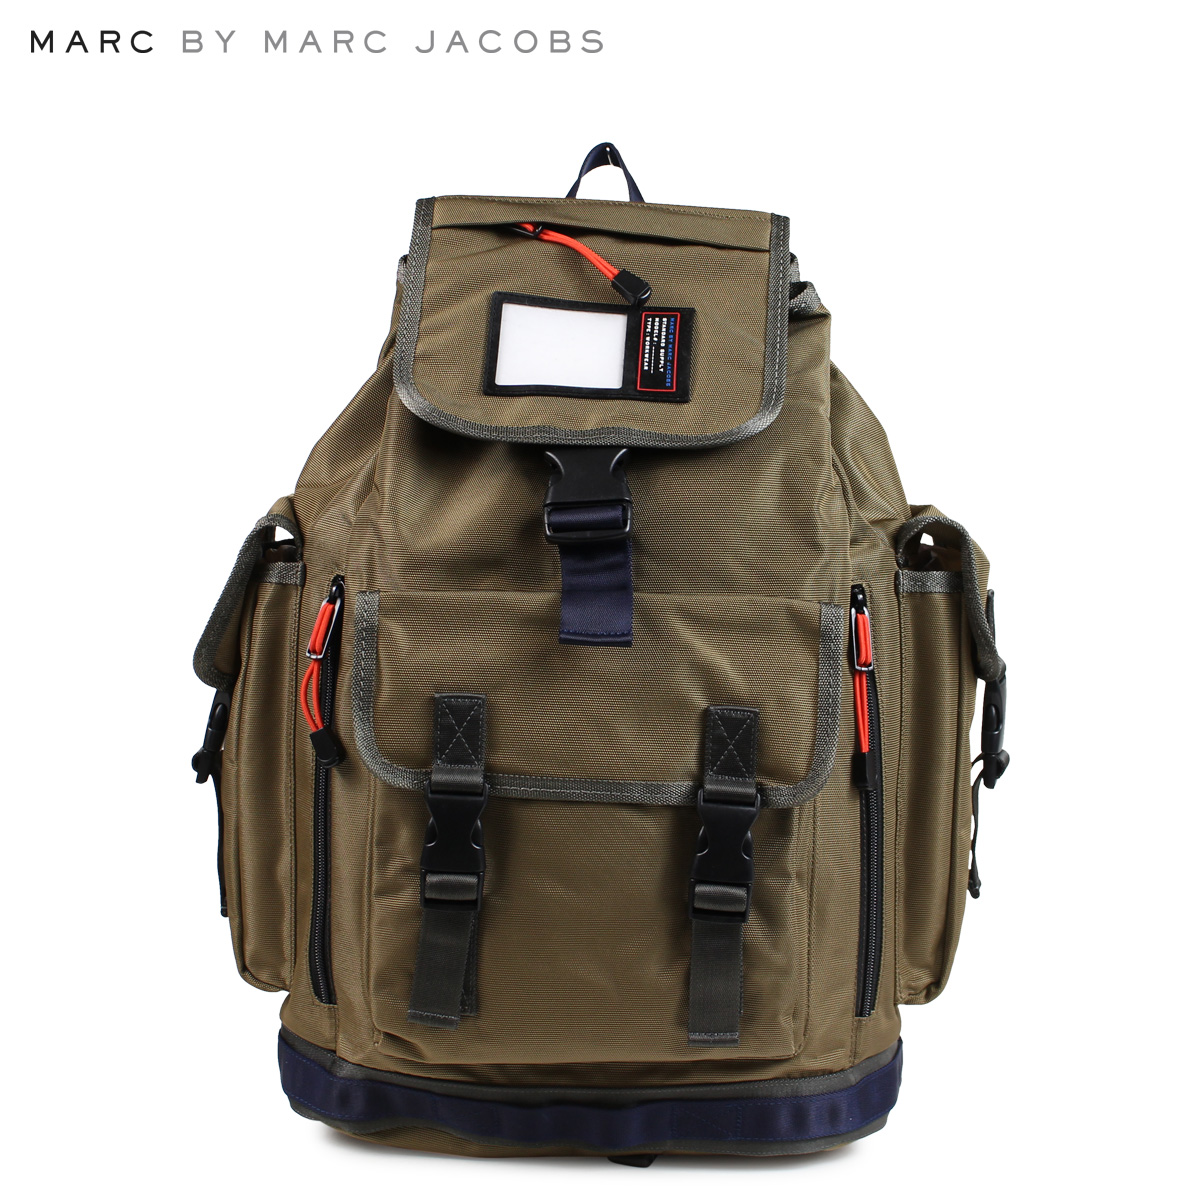 MARC BY MARC JACOBS WALTER BACKPACK マークバイマークジェイコブス リュック バッグ バックパック レディース メンズ ブラウン M0006944